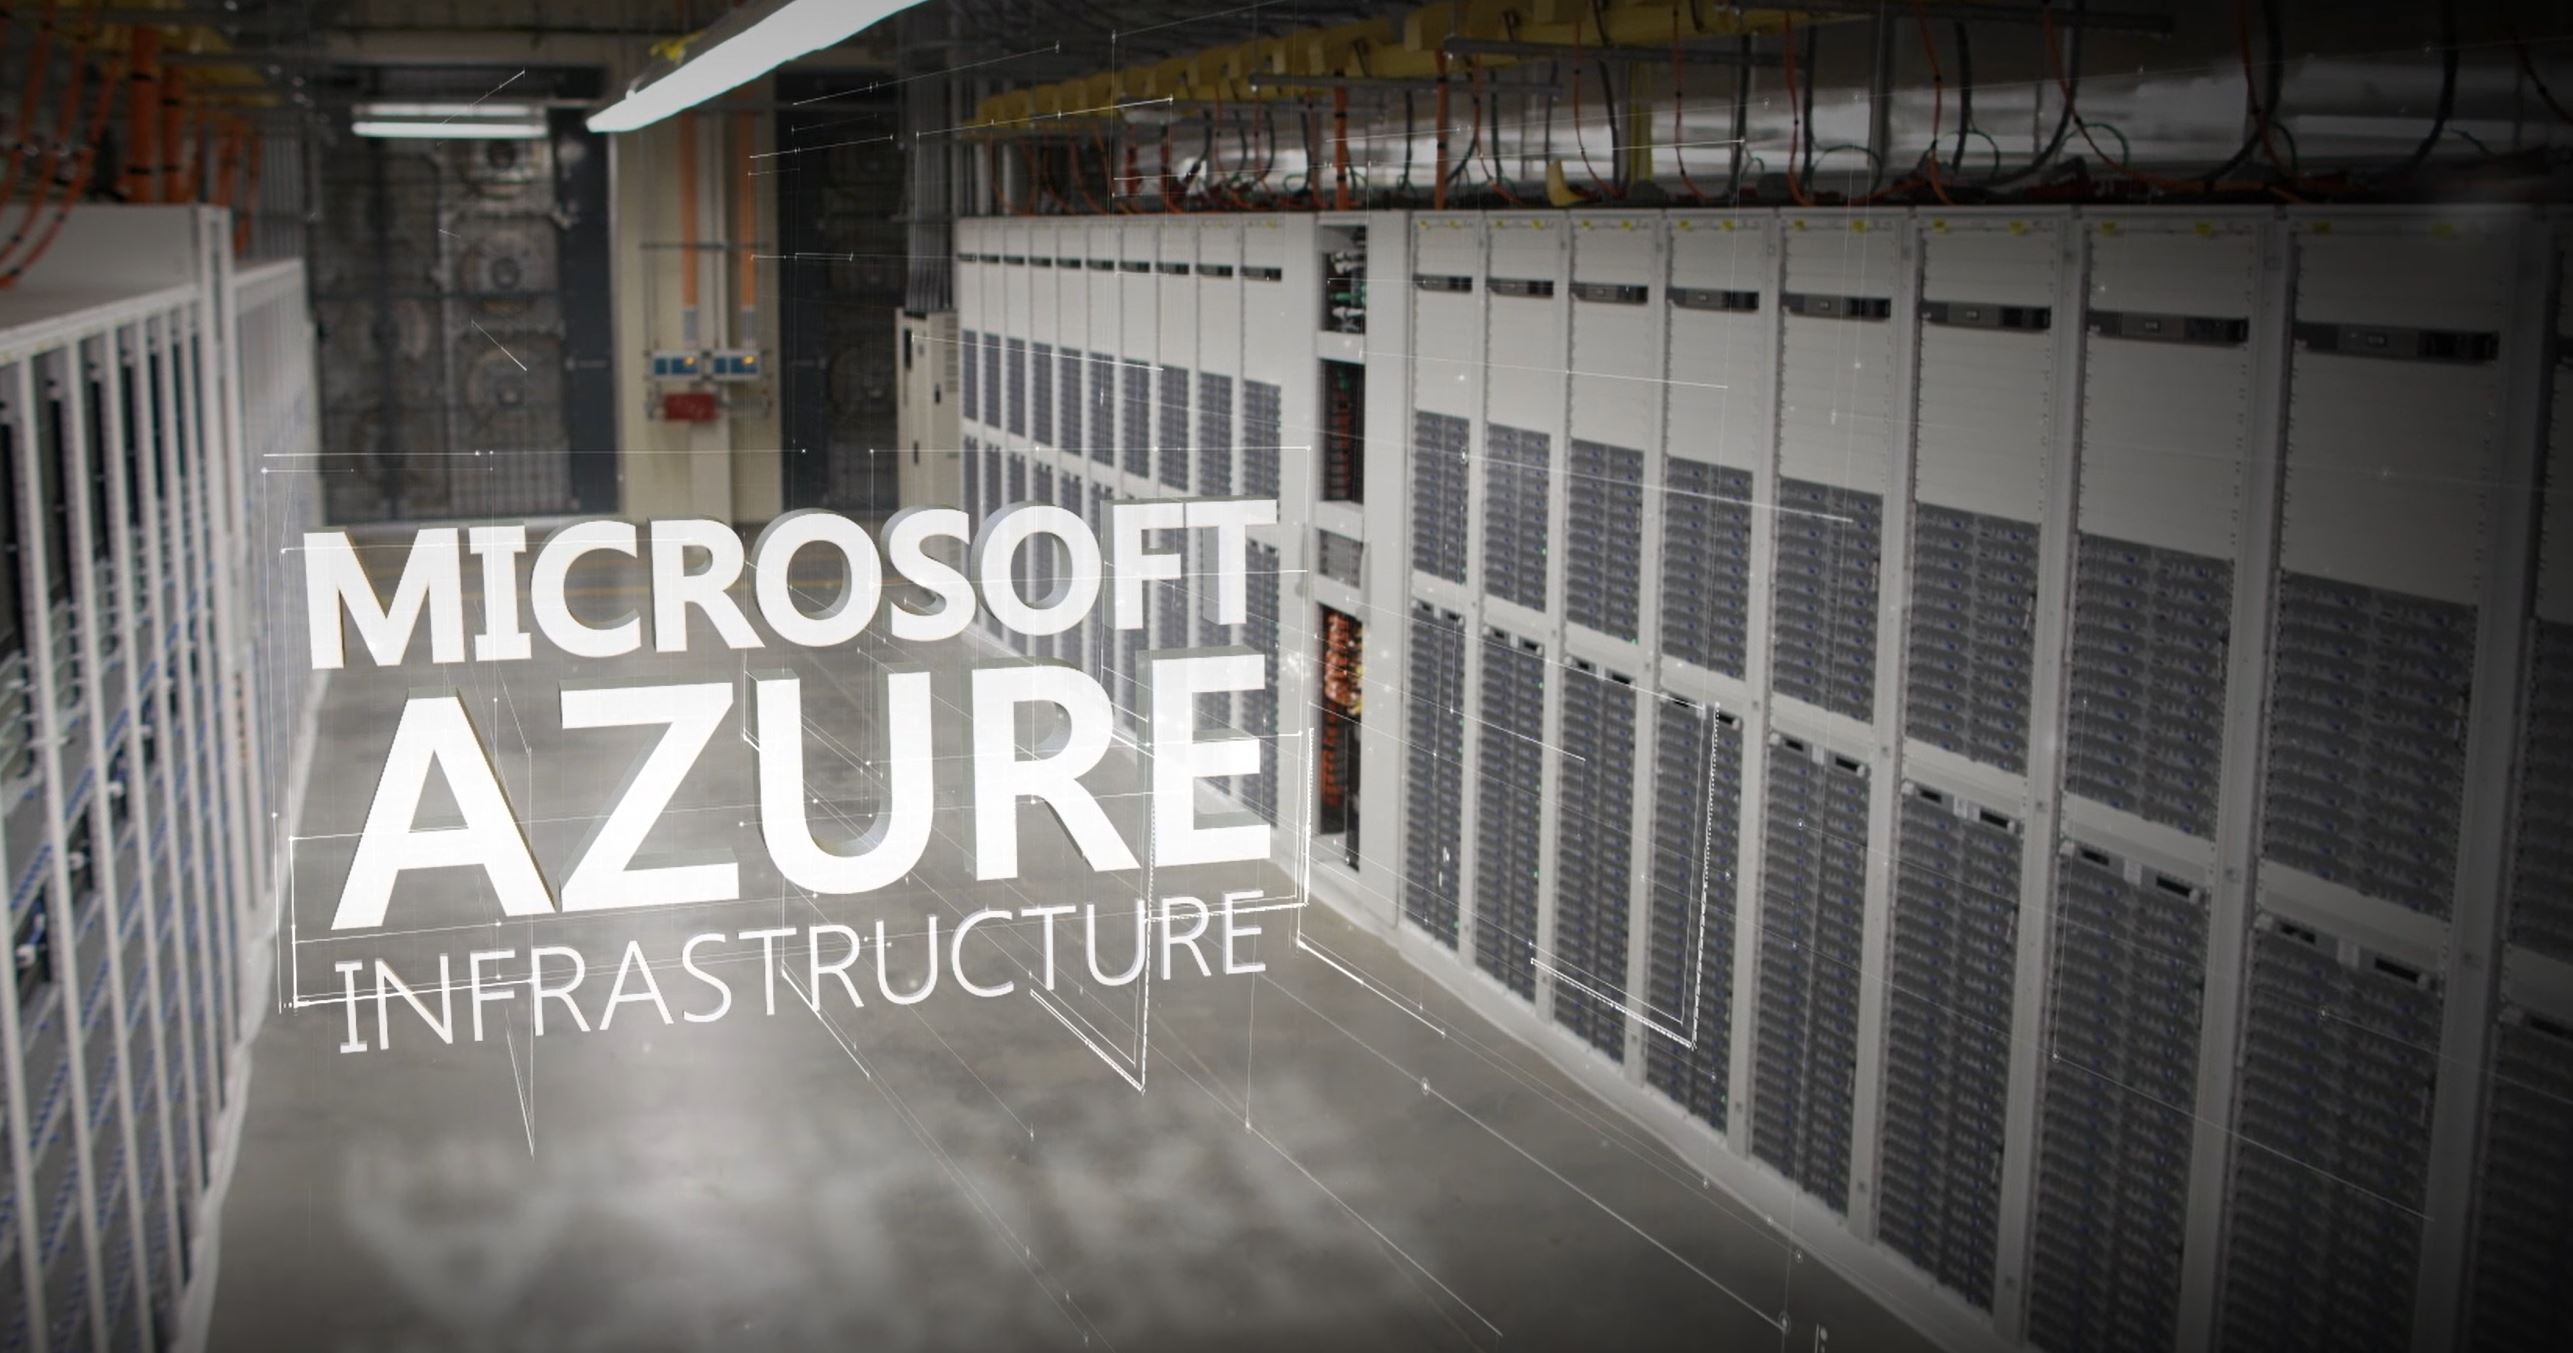 Microsoft Azure Infrastructure vision video